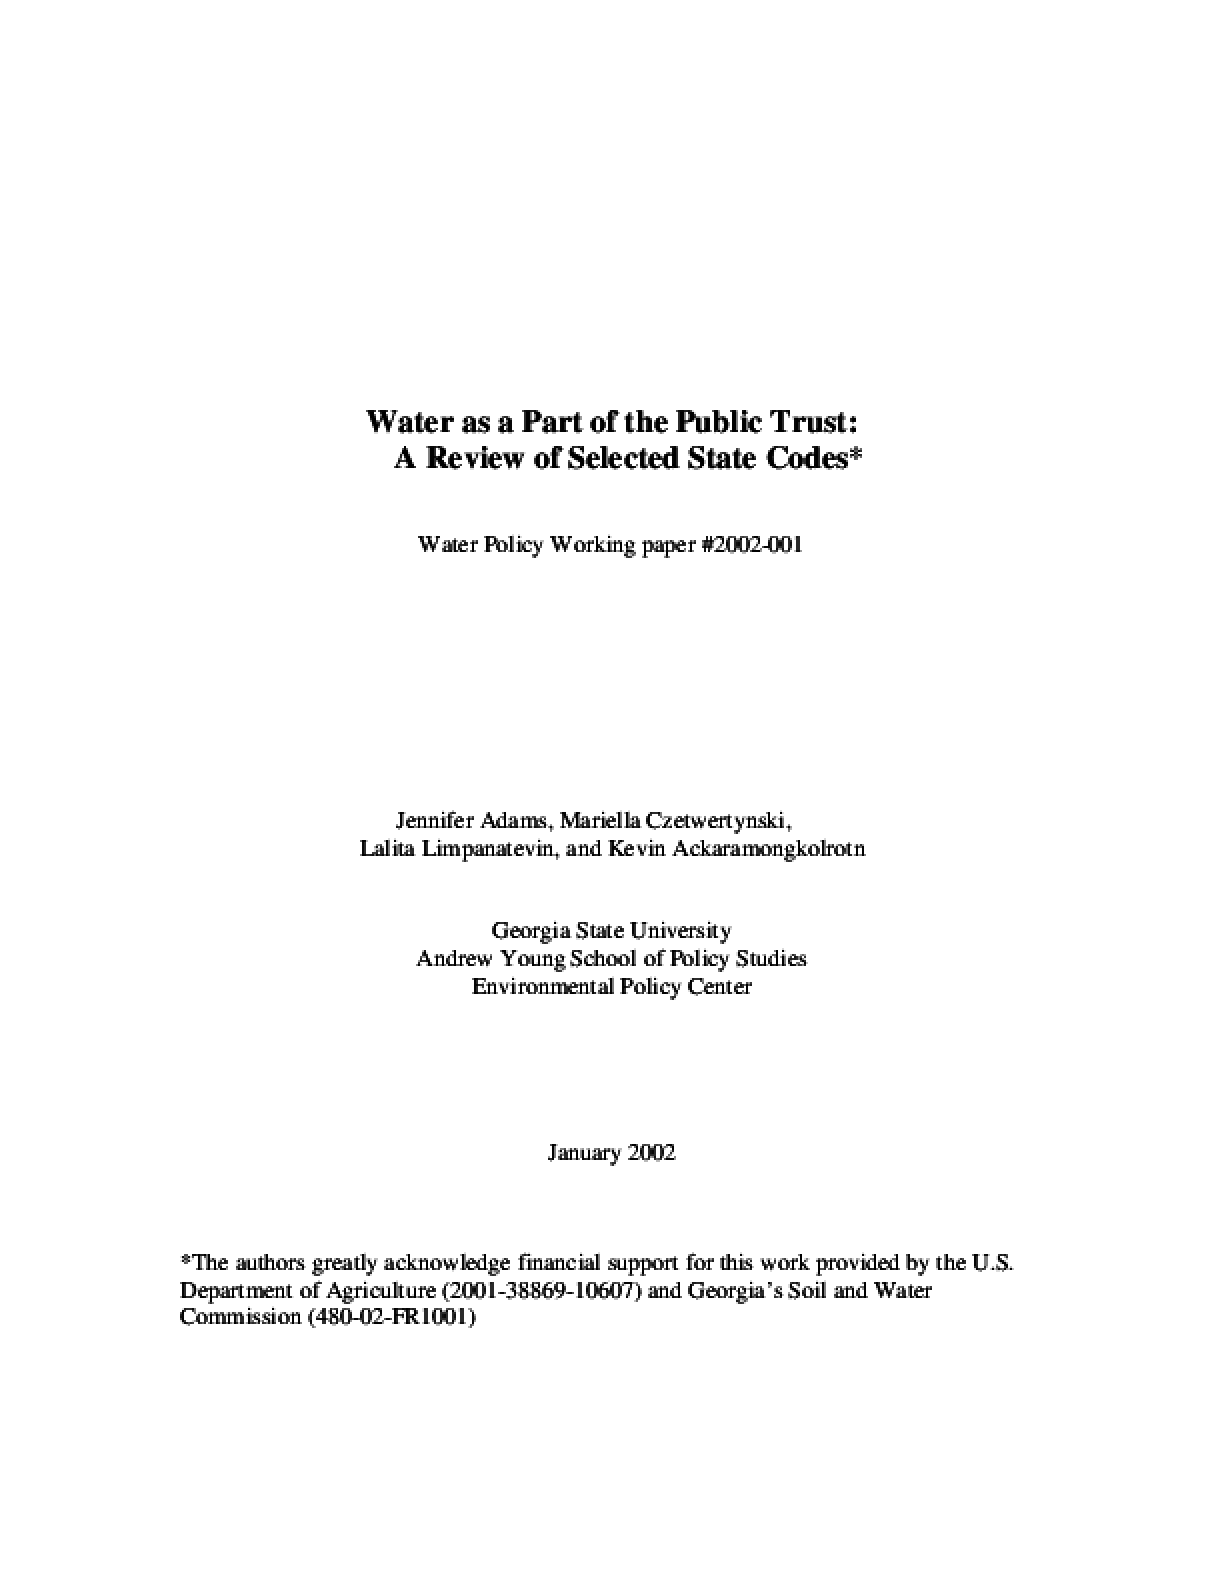 Water as a Part of the Public Trust: A Review of Select State Codes